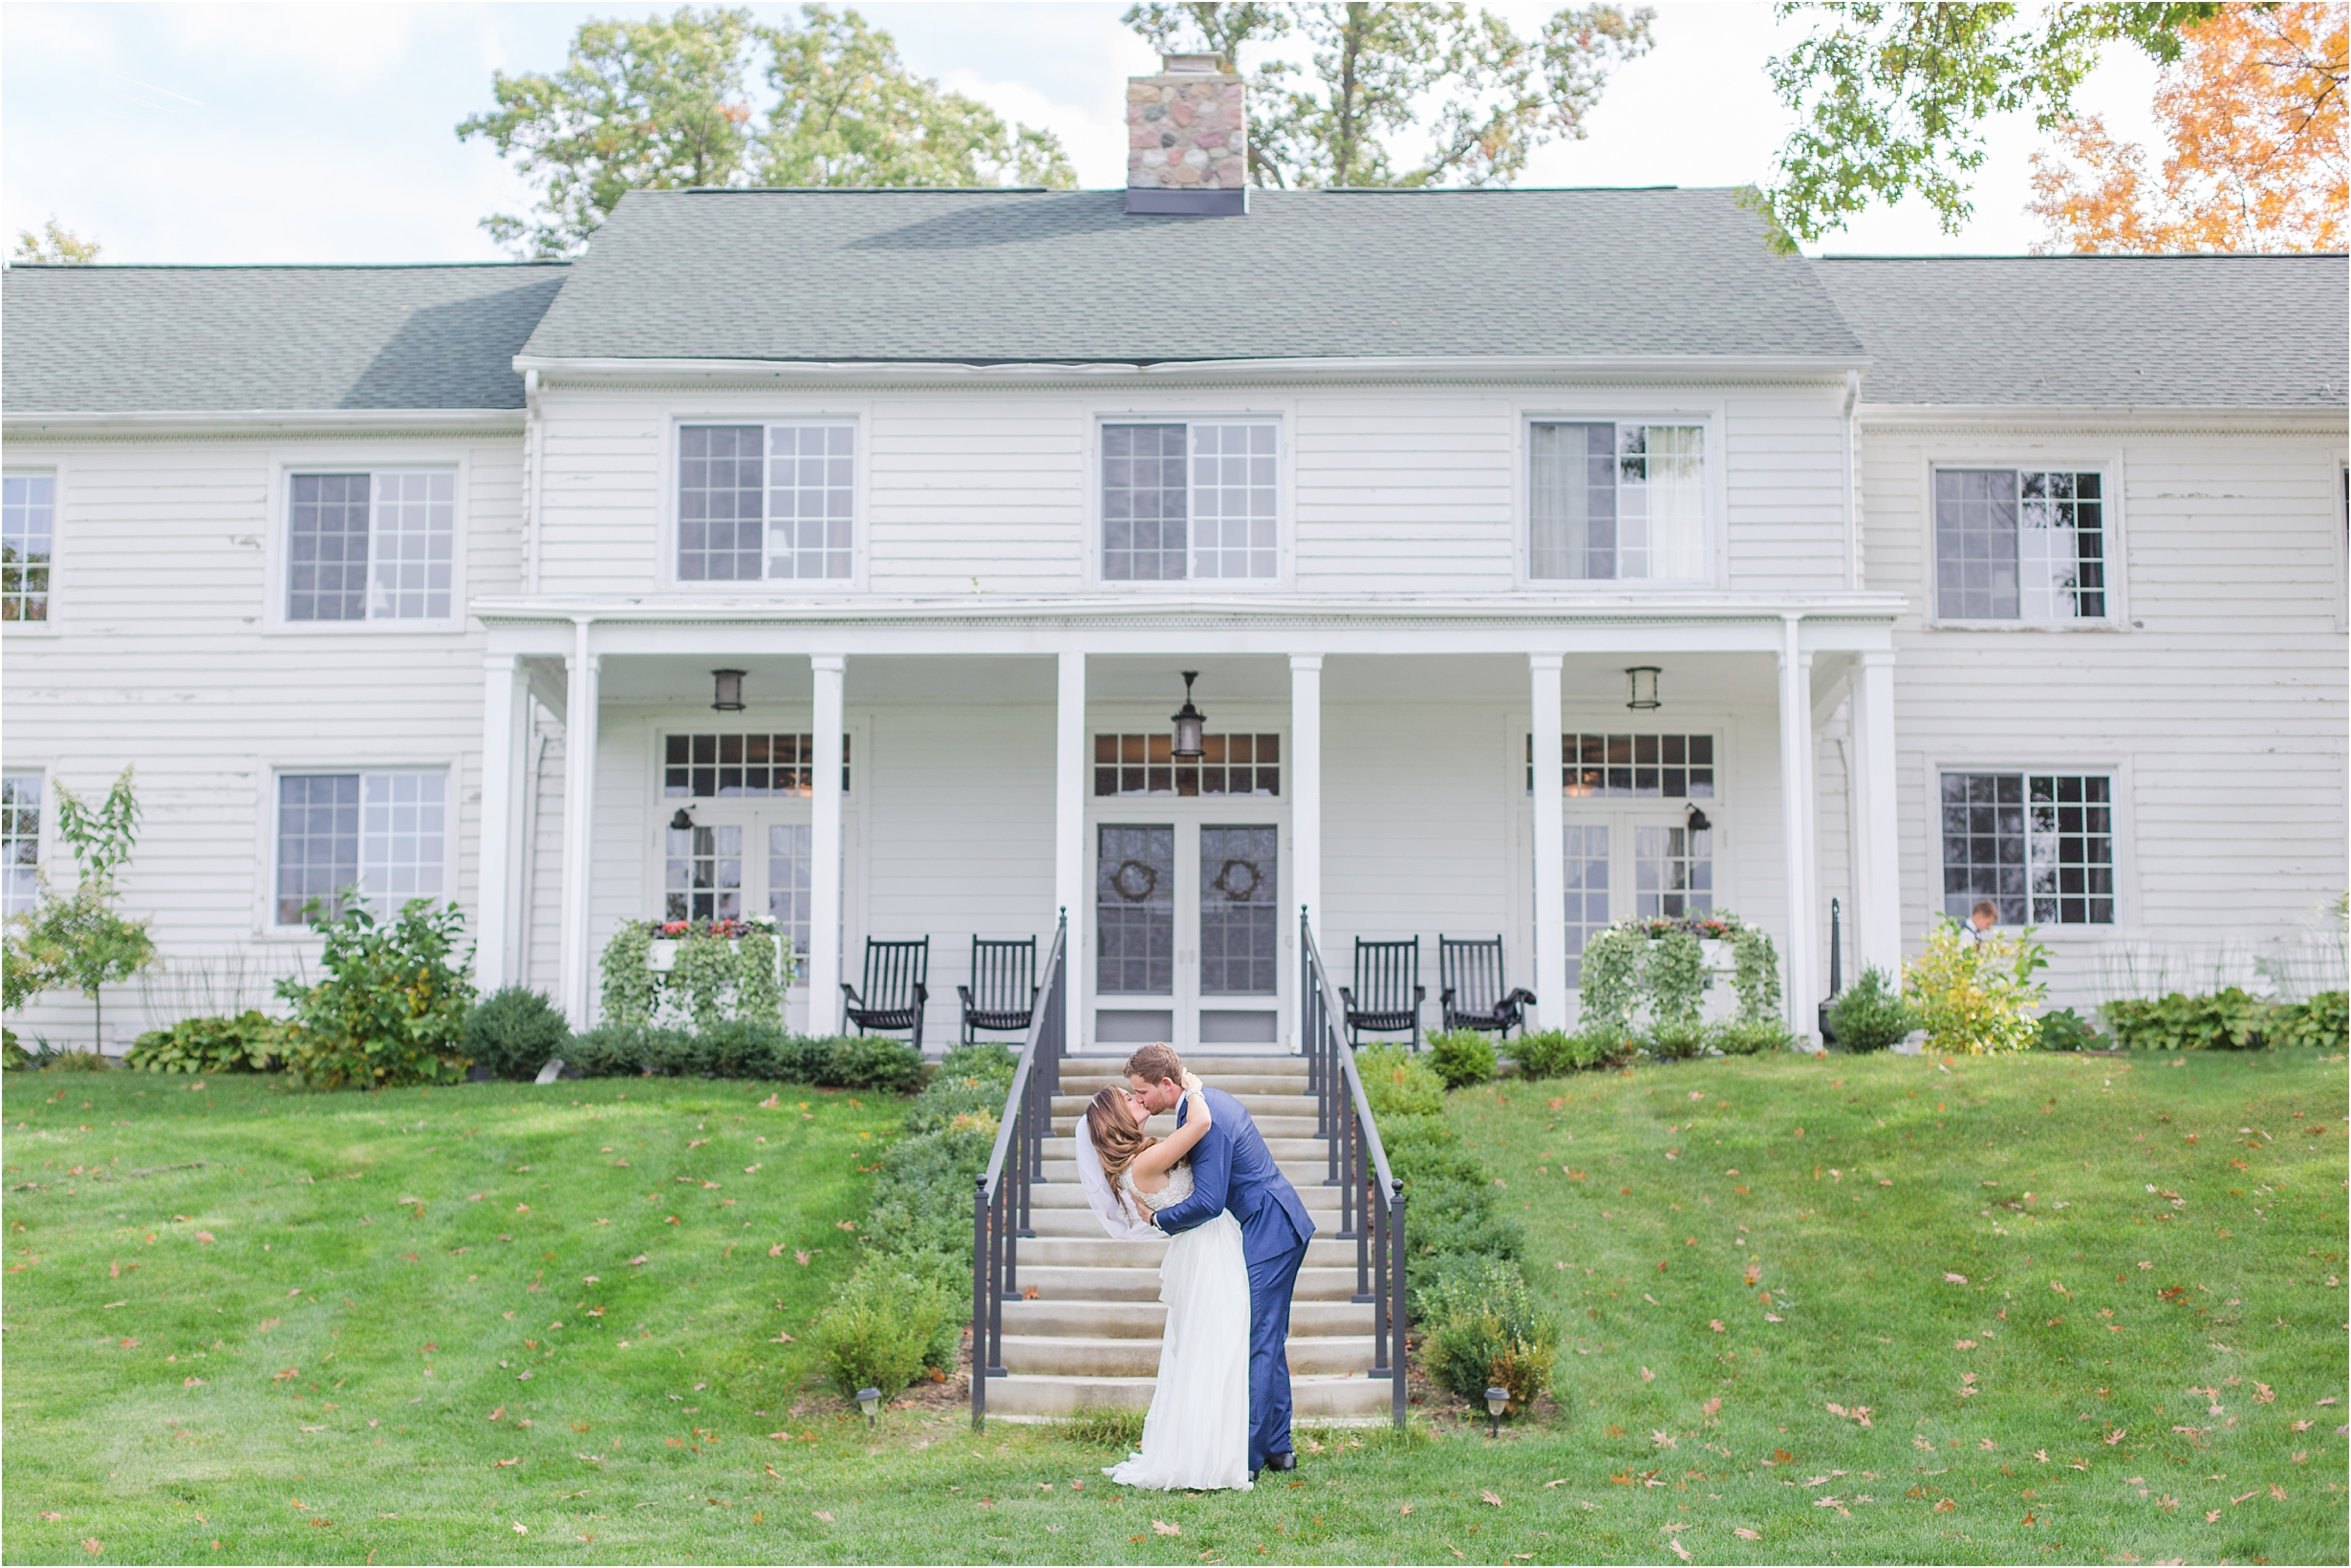 romantic-timeless-candid-wedding-photos-at-waldenwoods-resort-and-conference-center-by-courtney-carolyn-photography_0001.jpg